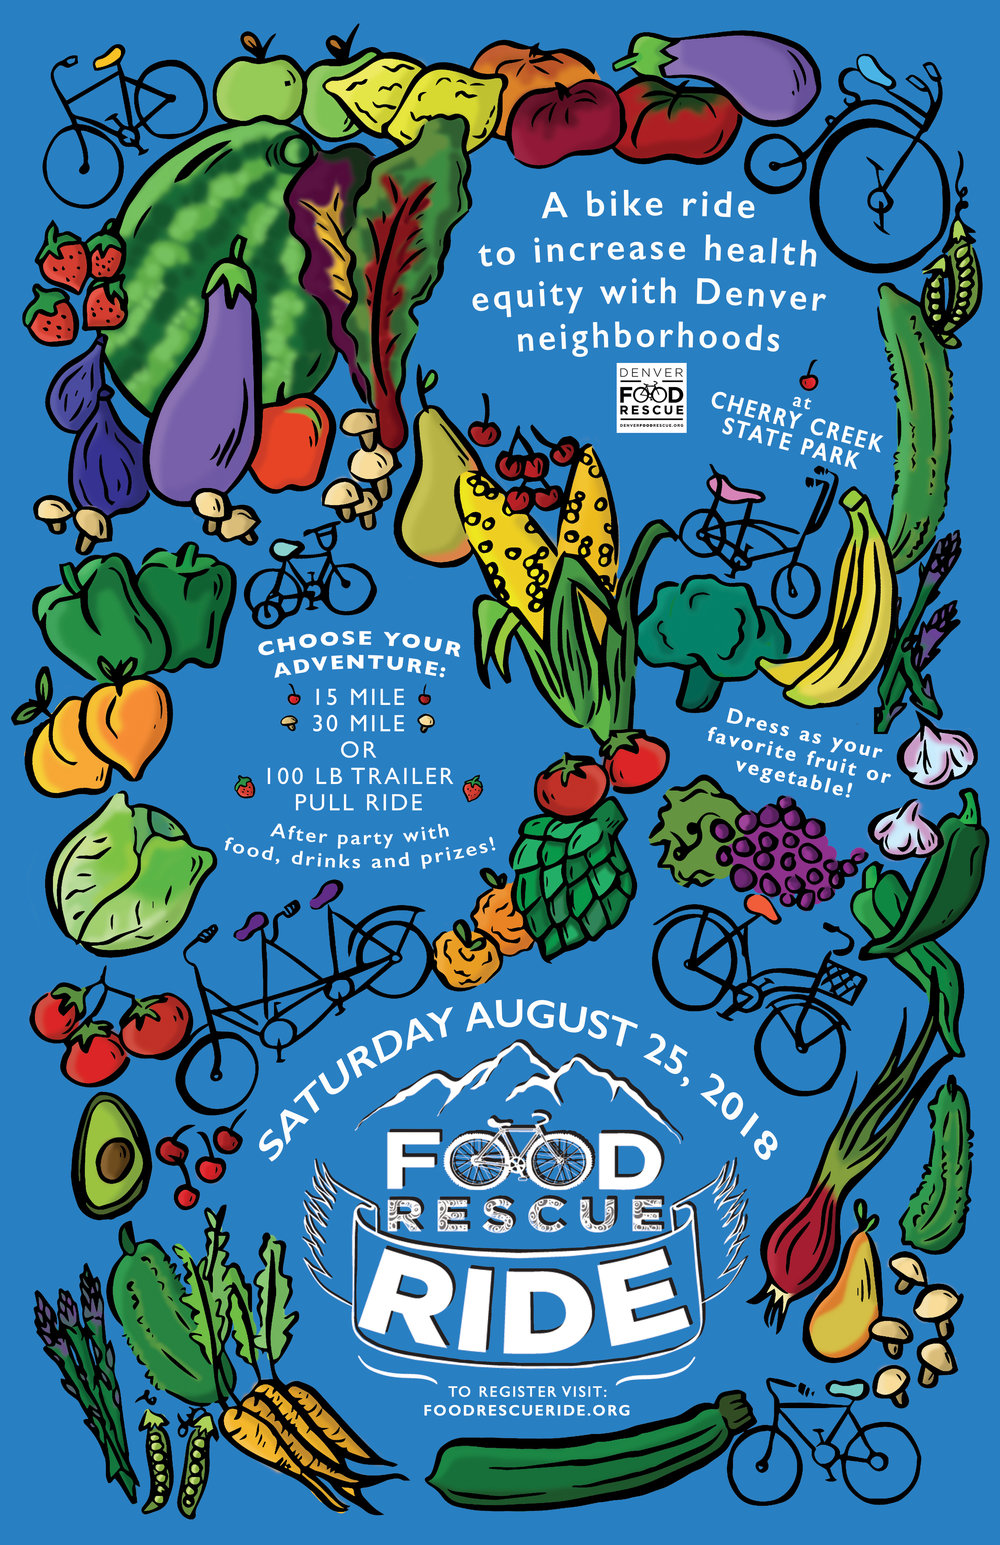 Denver Food Rescue Ride Poster * Click to expand *